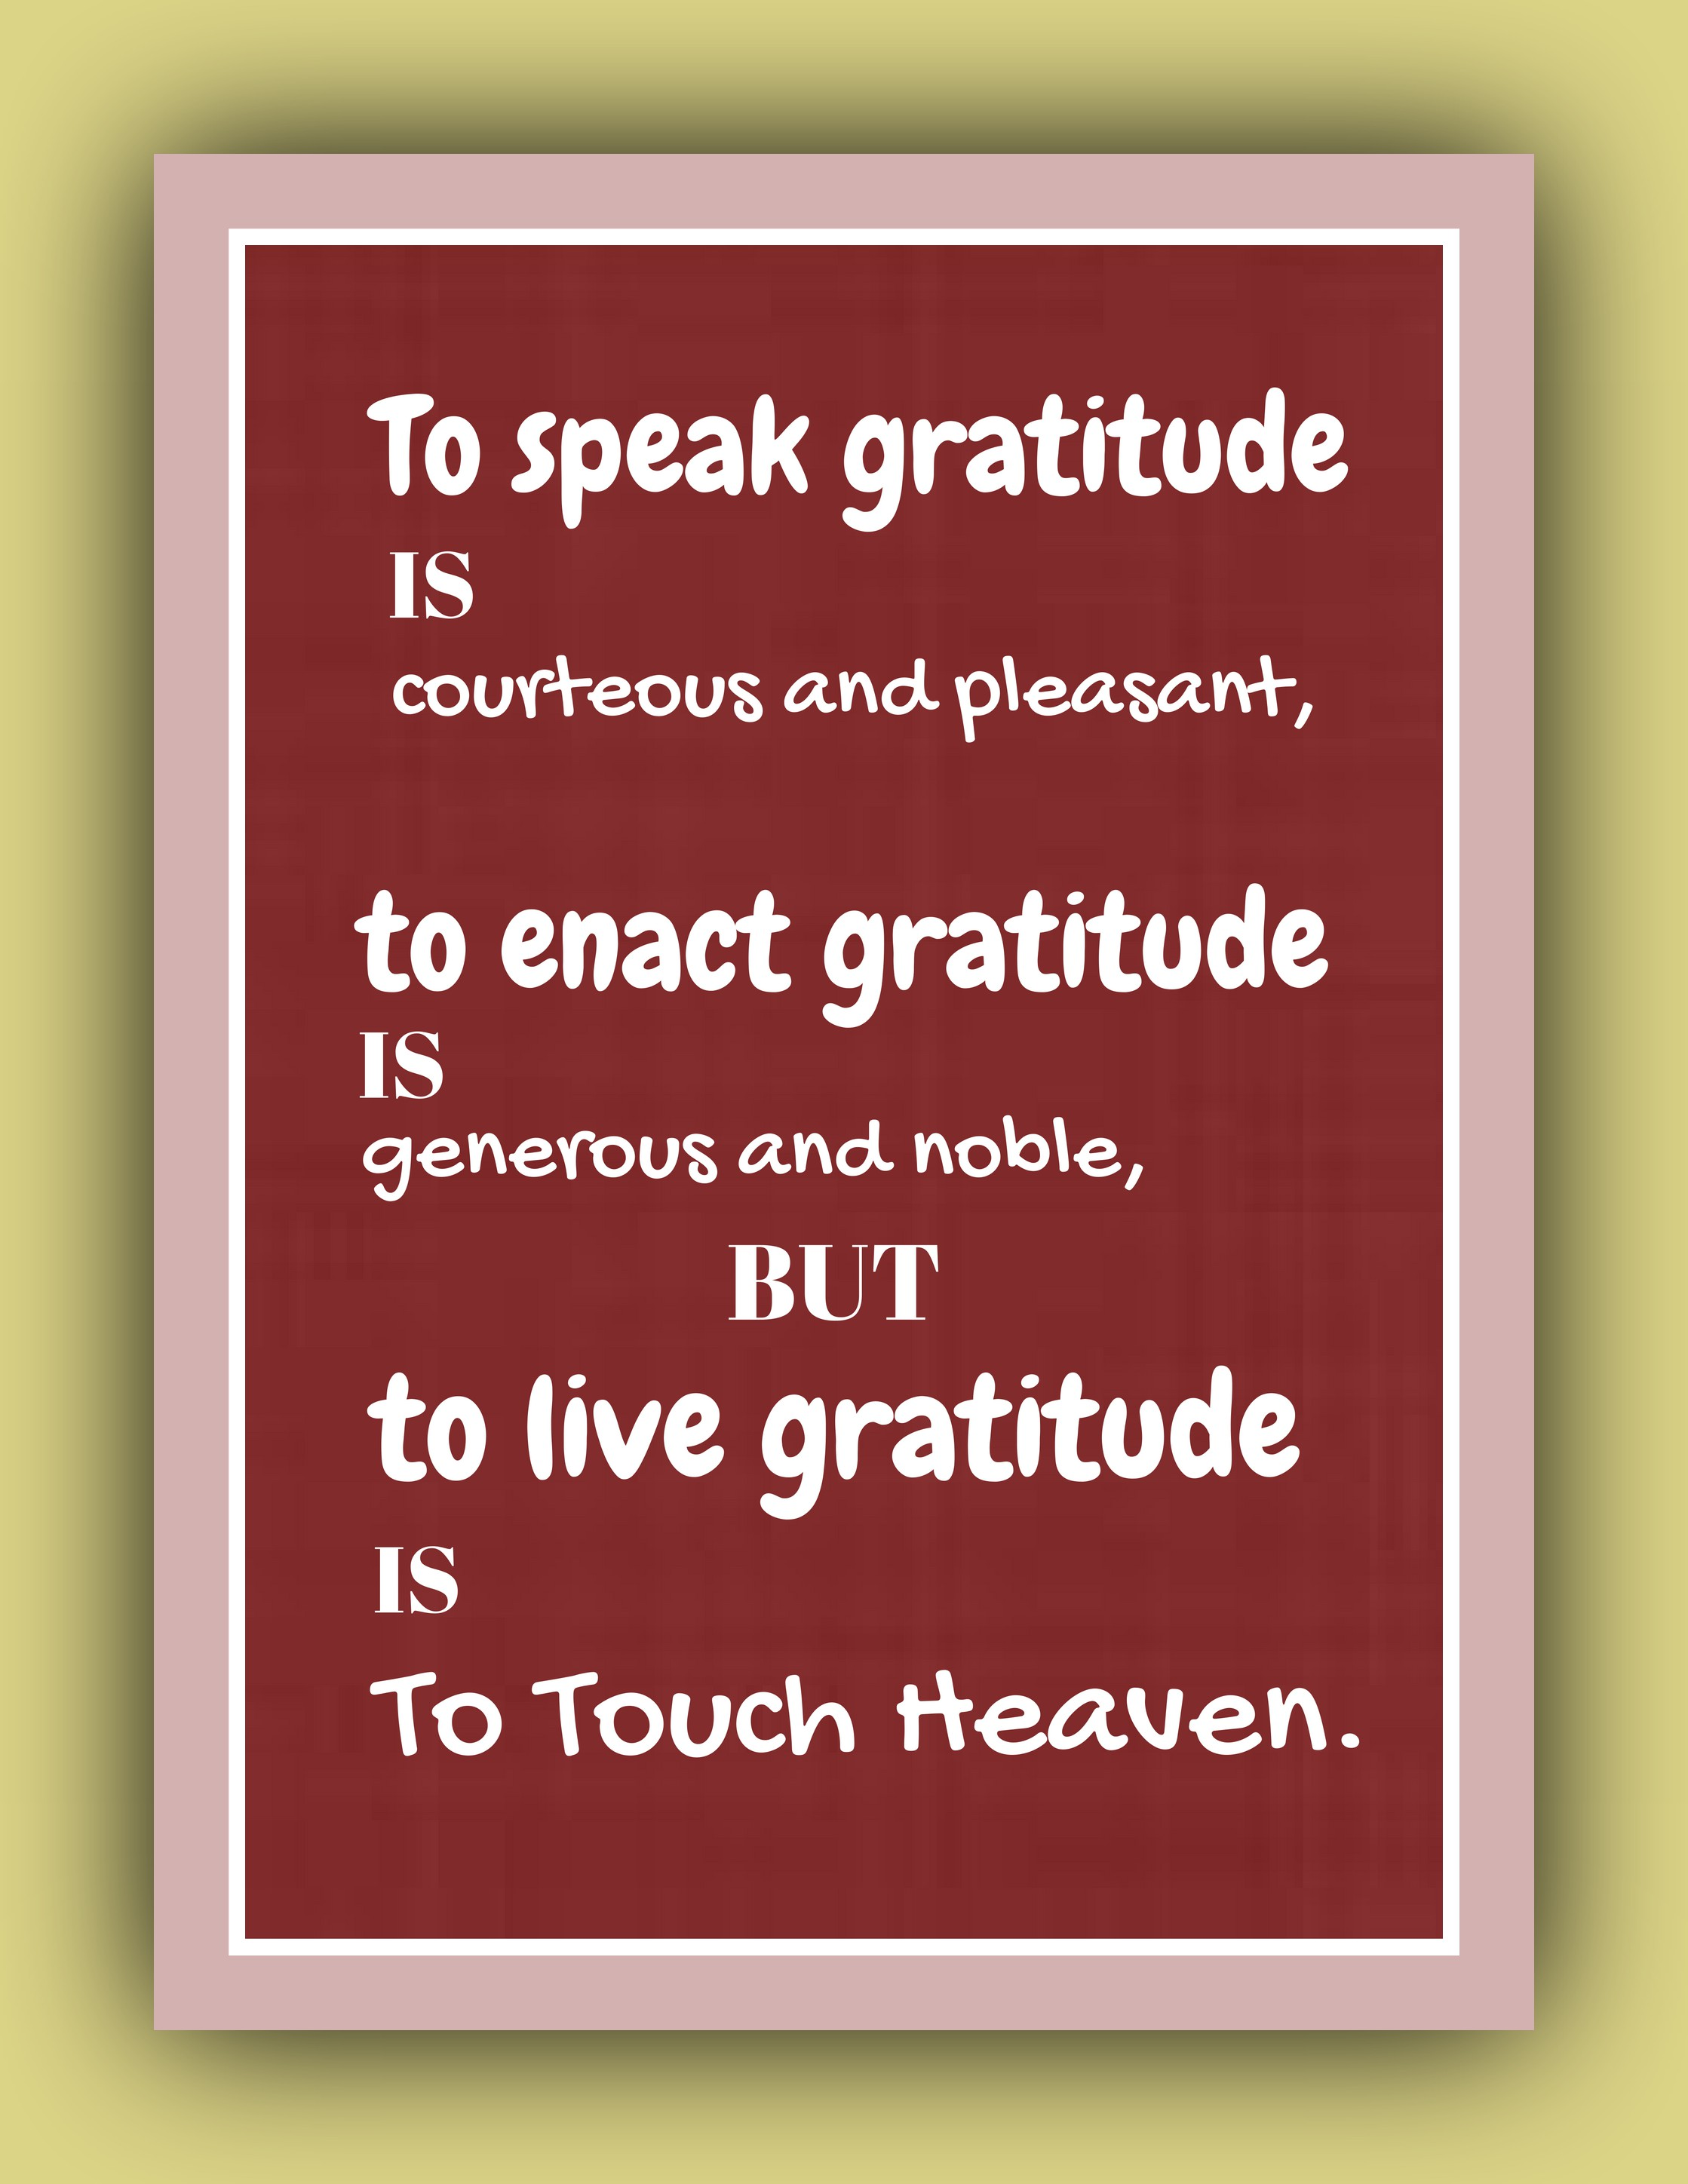 25 Happy Thanksgiving Quotes As Family And Friends Gather